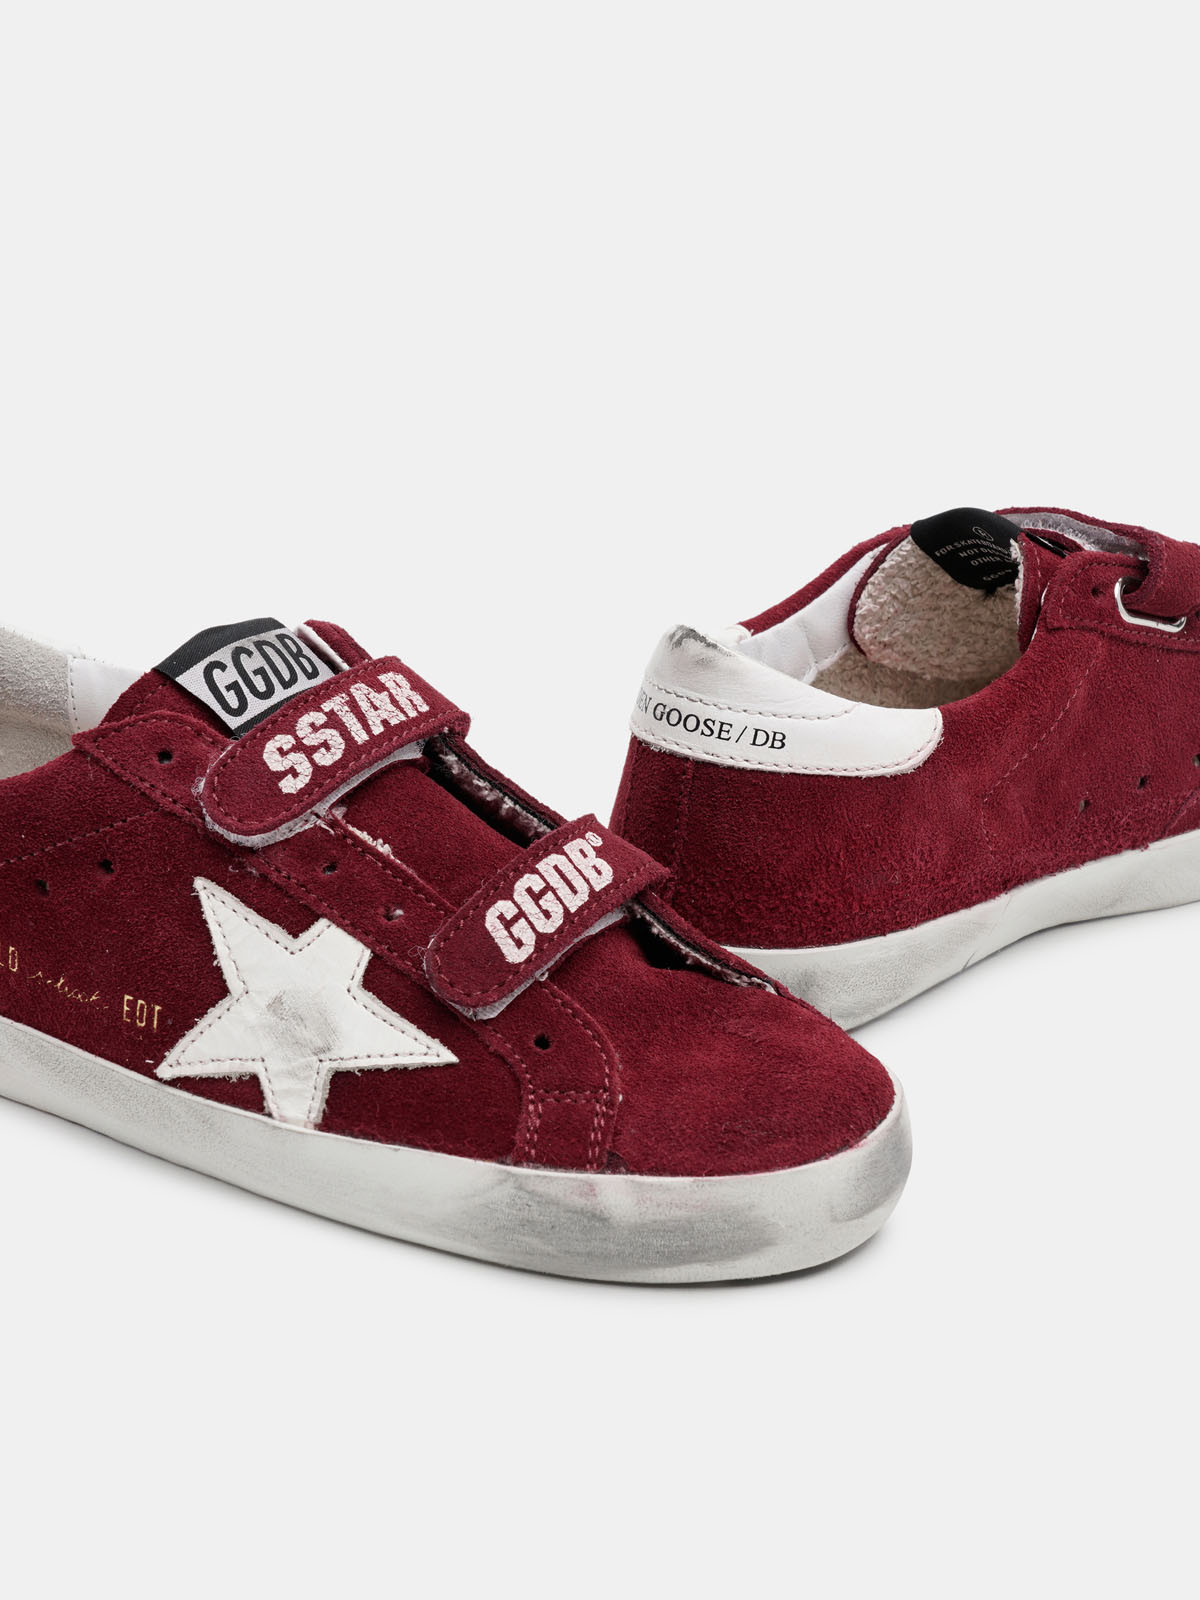 Golden Goose - Old School sneakers in suede with white star in